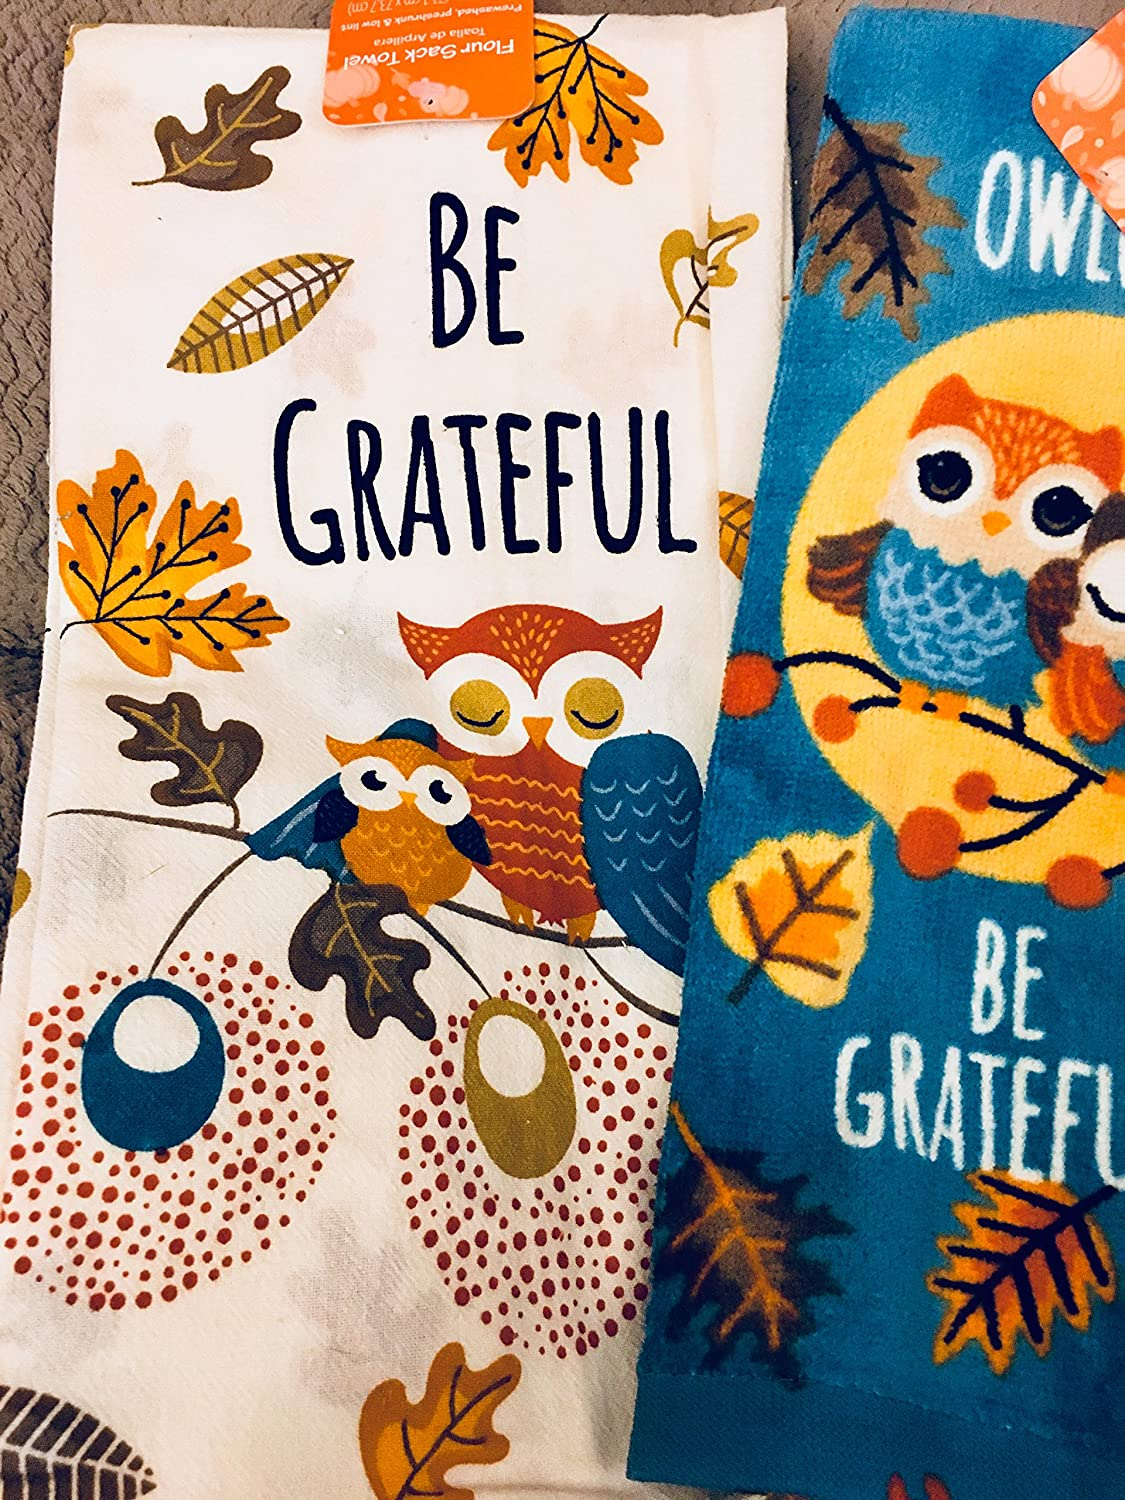 Amazon.com: Critter Owl Towel Set Be Greatful Owls 2 Kitchen Dish Towels: Home & Kitchen